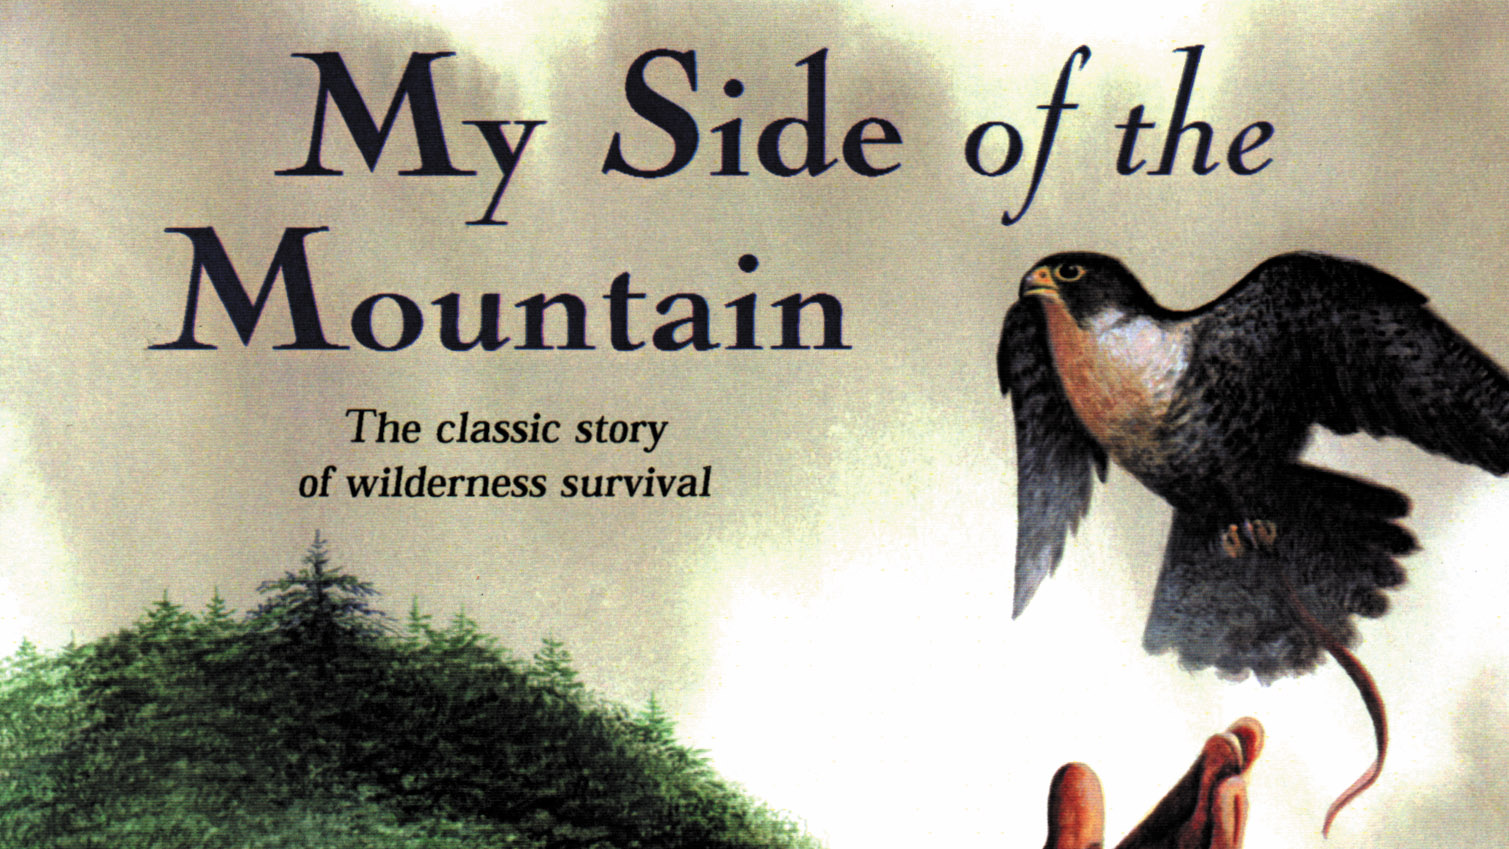 my side of the mountain essay Jean has been inducted into the new york state writers hall of fame i am writing on behalf of the new york state writers hall of fame with the happy news that this year's selection committee has selected jean craighead george to be one of its 2016 inductees.